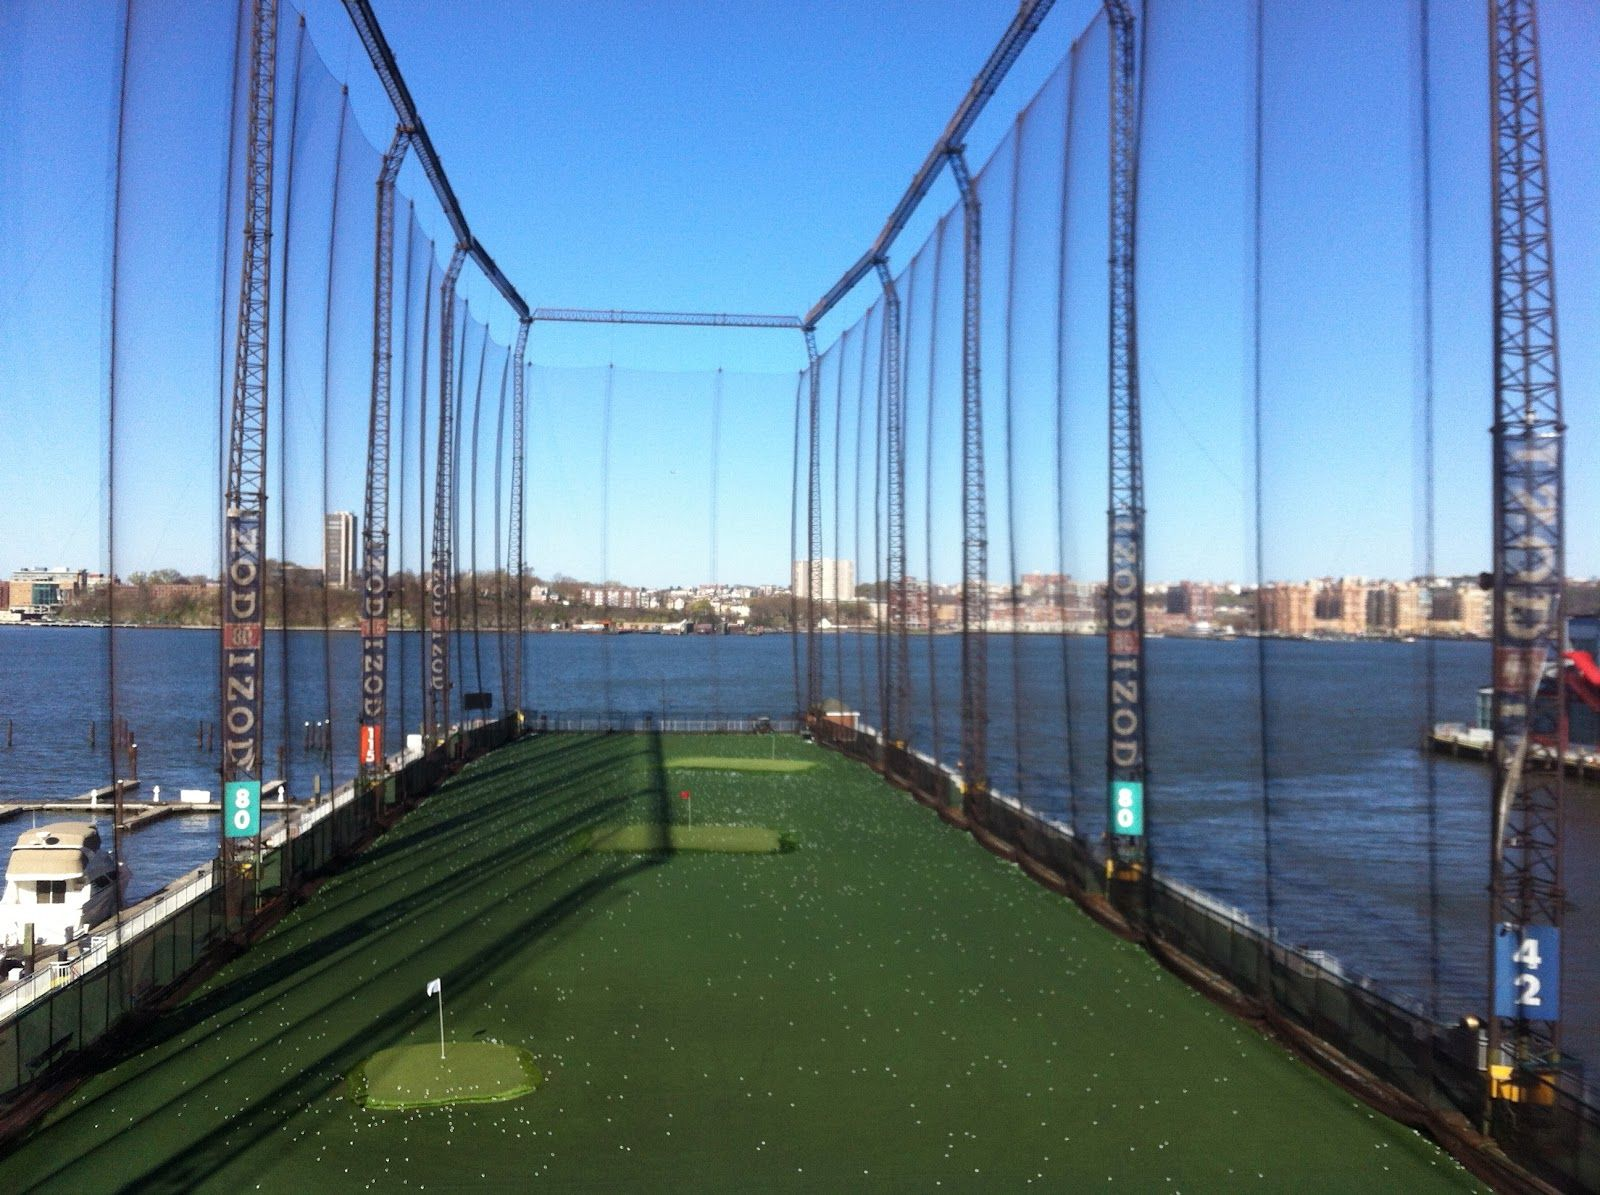 10+ Chelsea piers golf nyc information